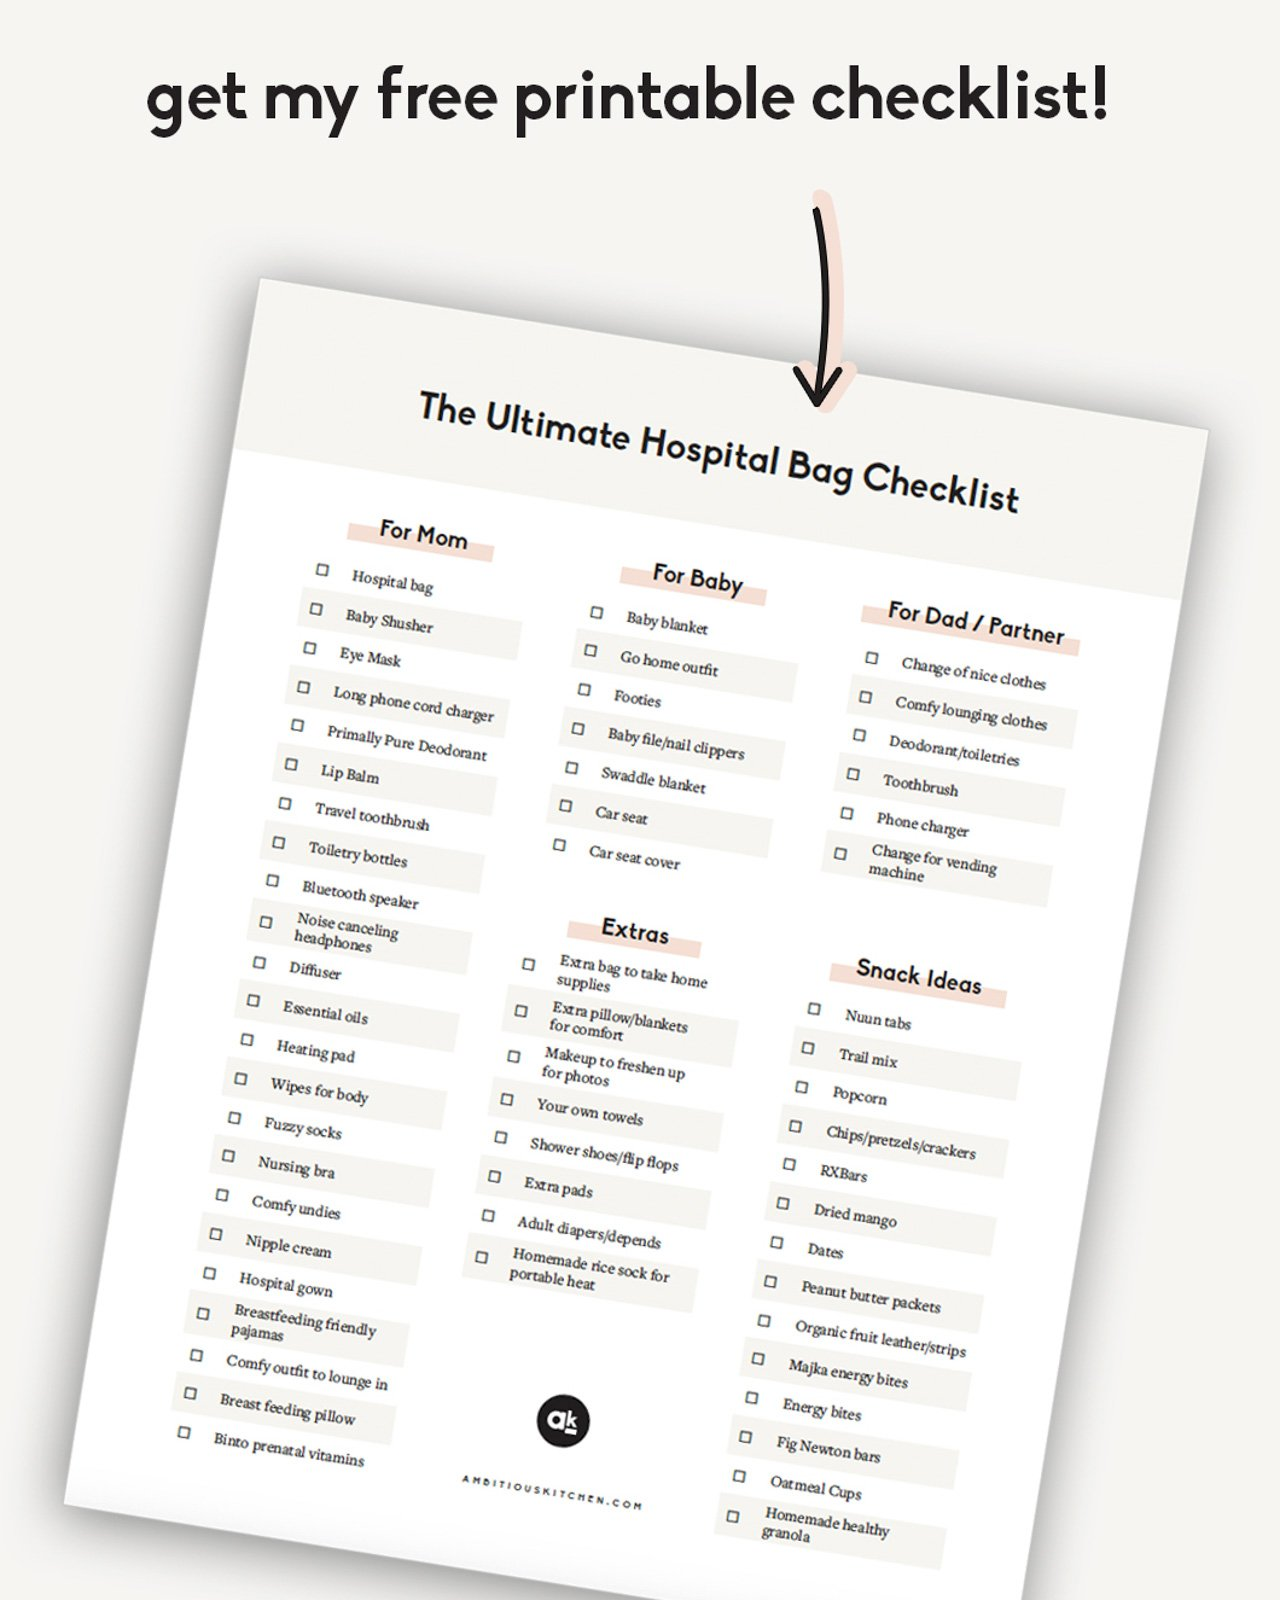 printable checklist of what to bring to the hospital